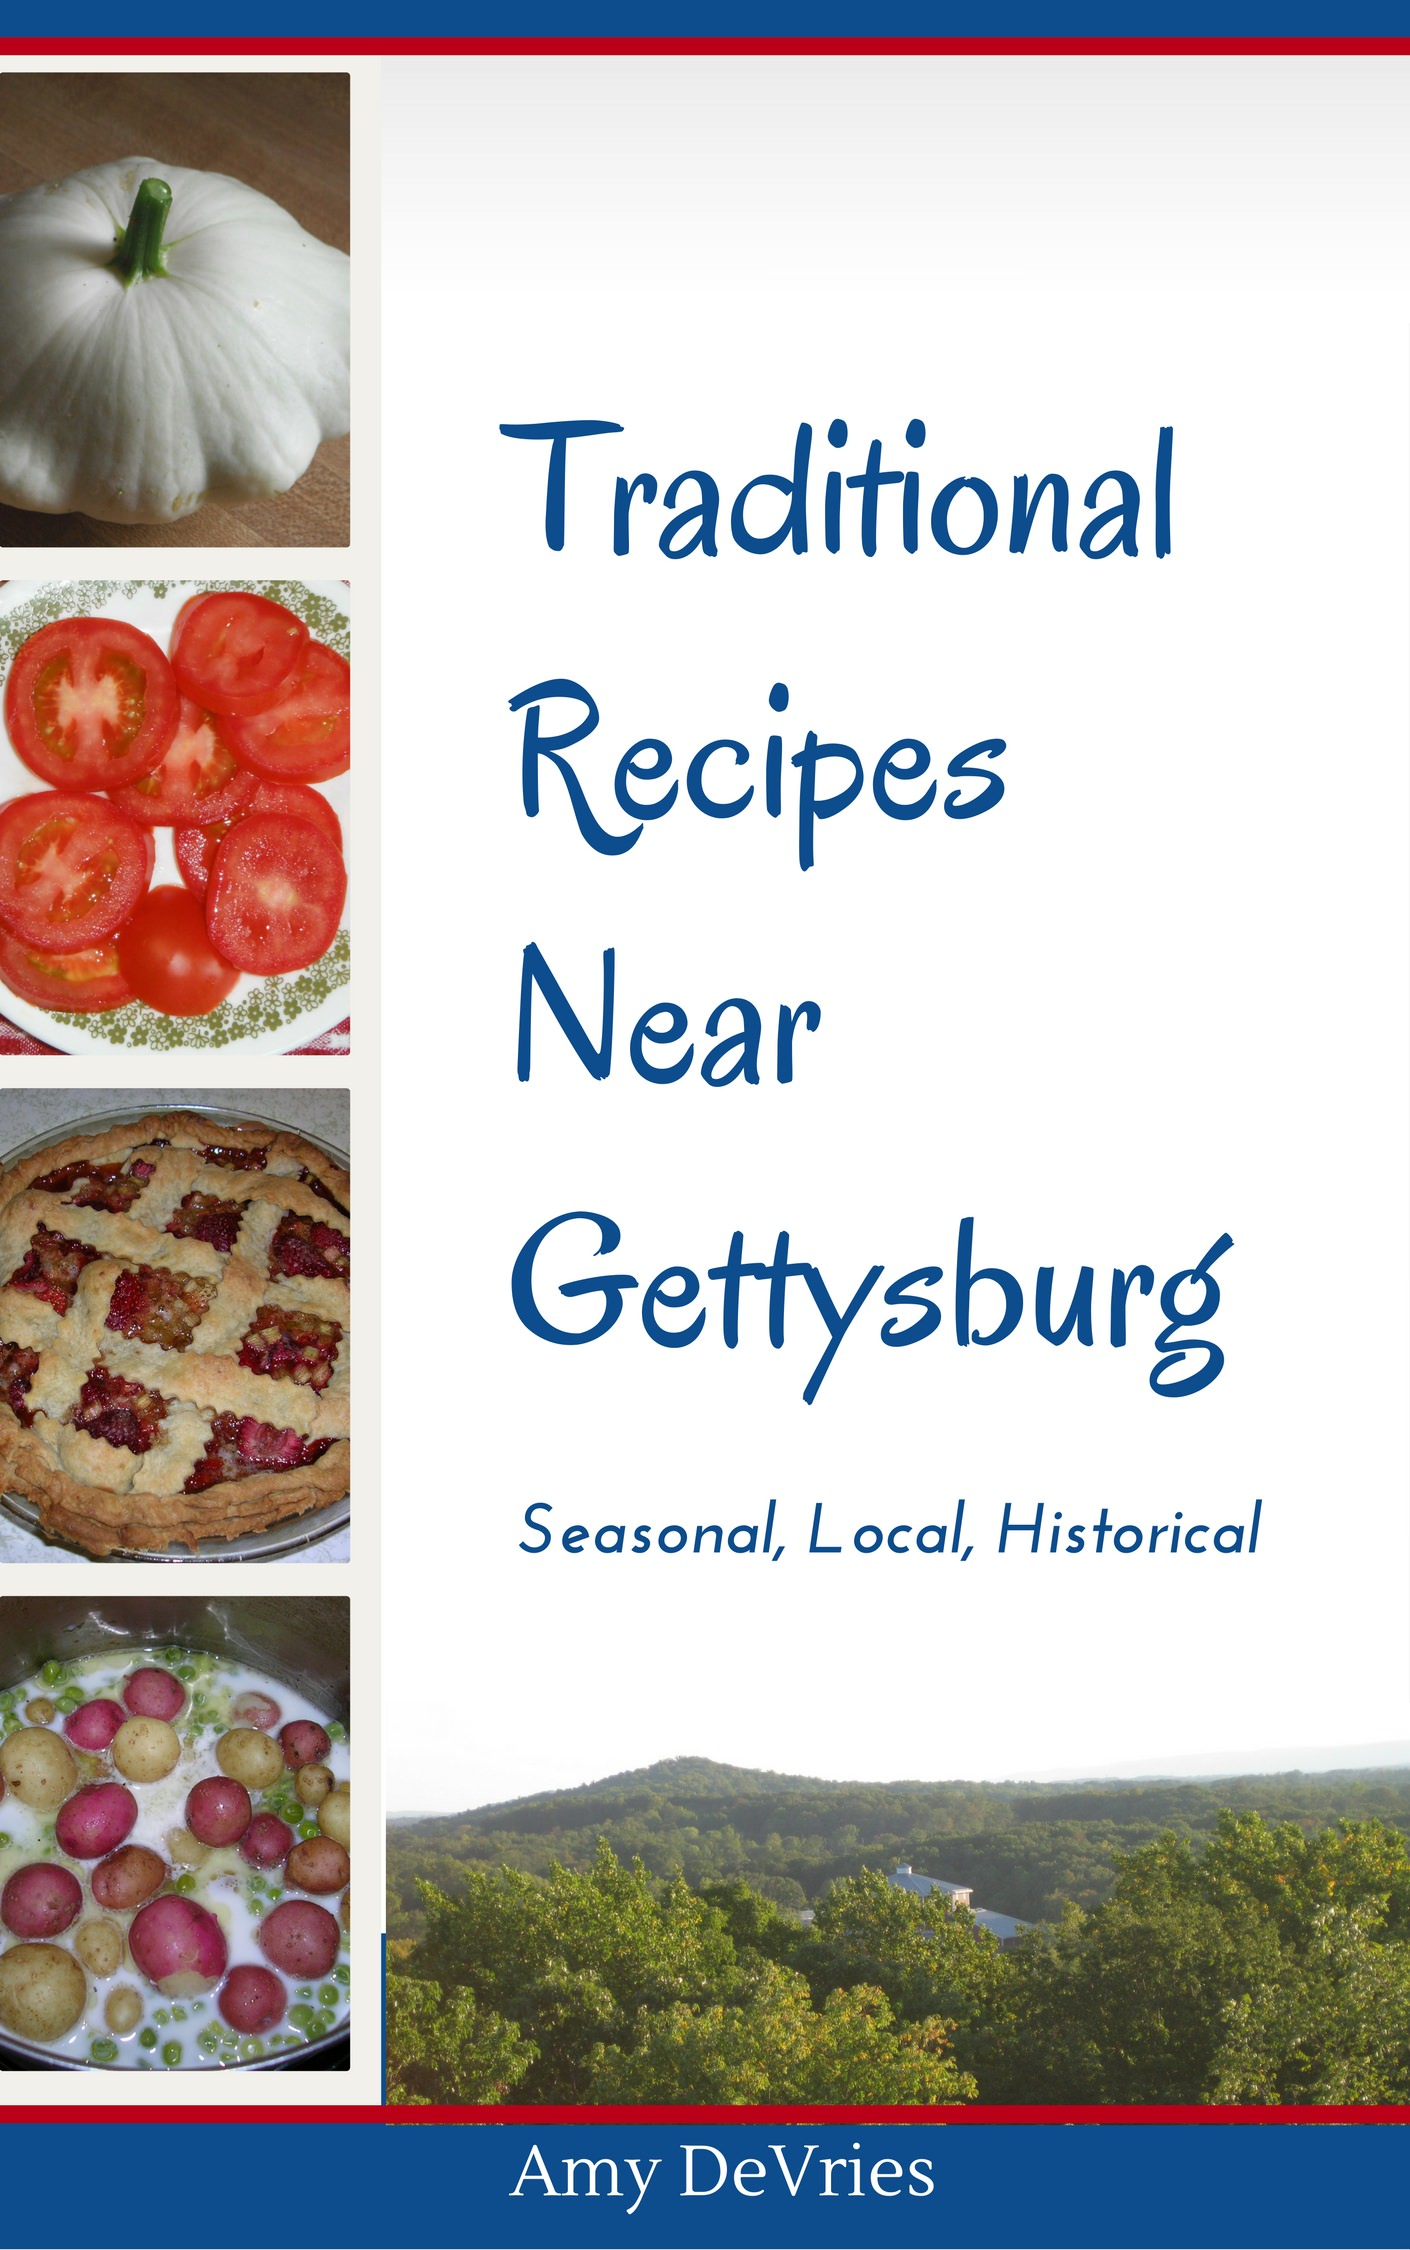 Traditional Recipes Near Gettysburg by Amy DeVries